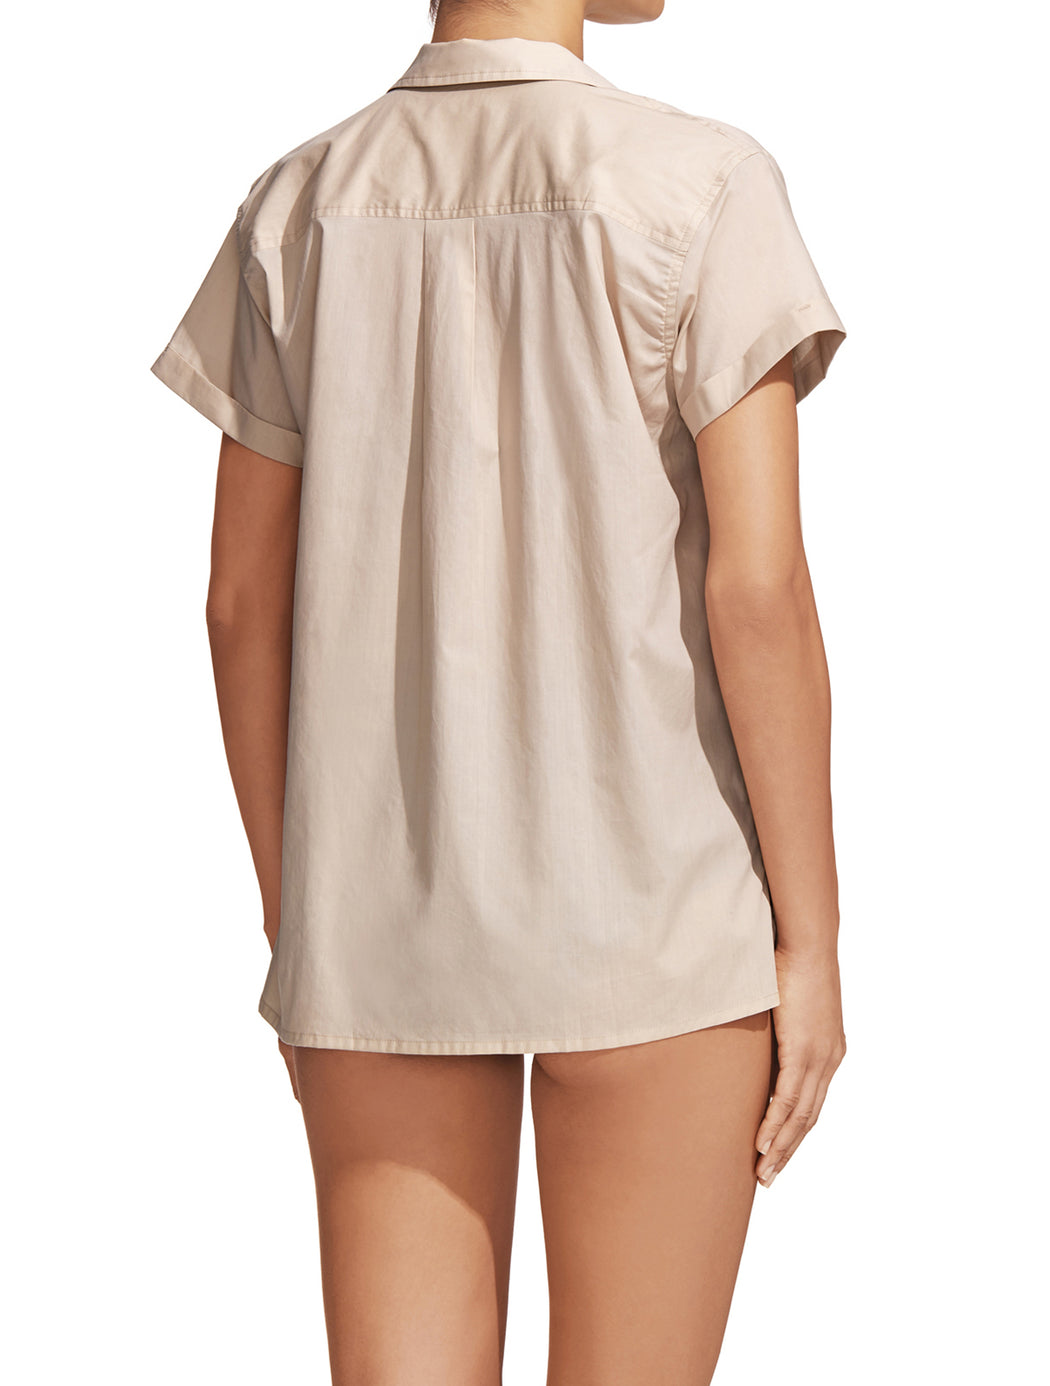 Matteau Stone Short Sleeve Shirt